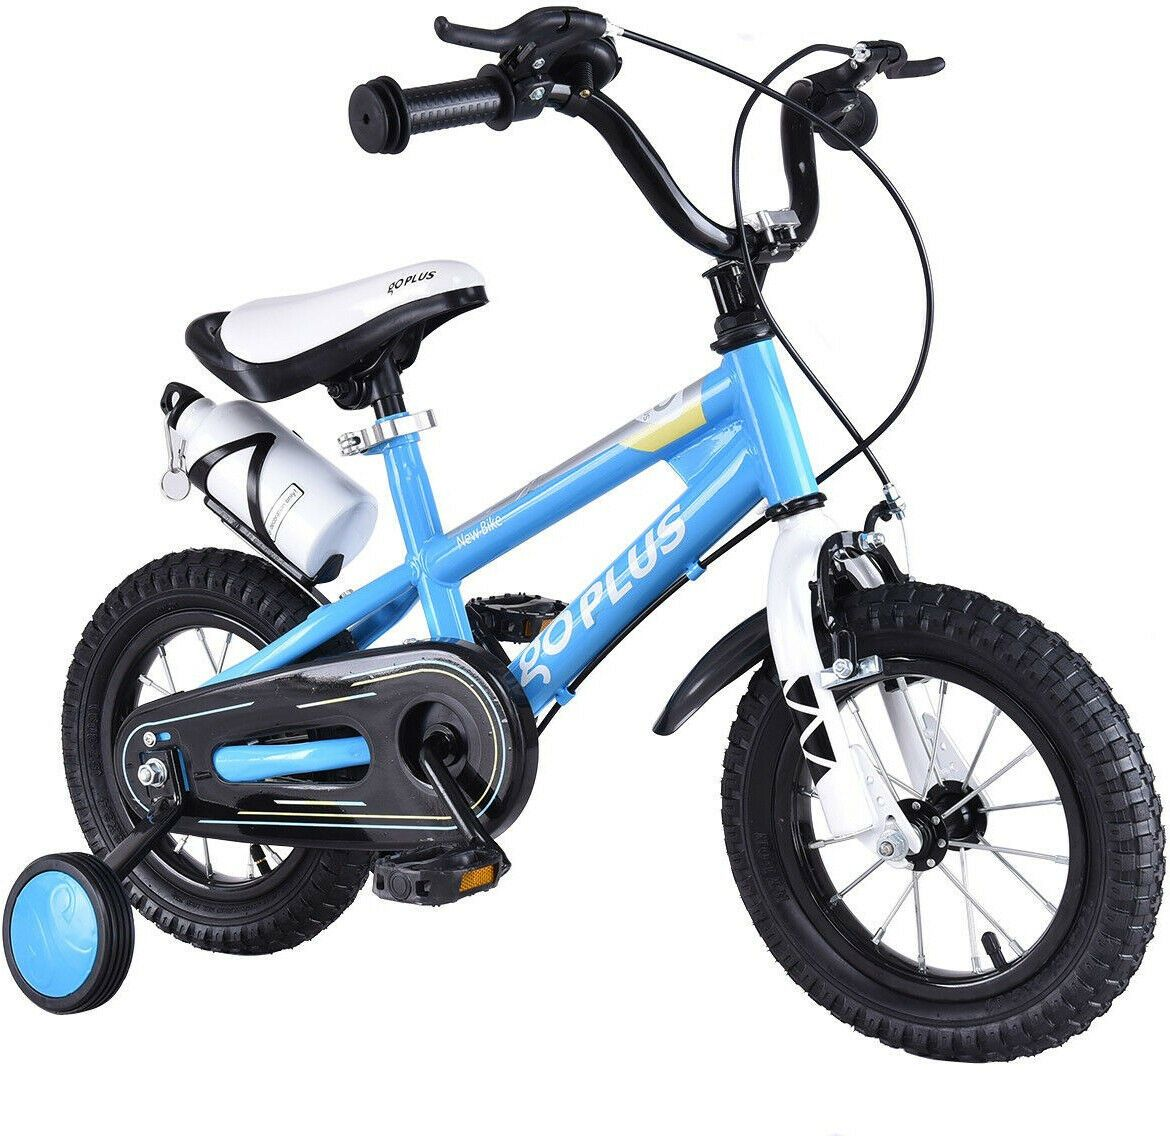 12 Freestyle Children Boys And Girls Bicycle With Training Wheels Blue 6952938374378 Ebay Kids Bike Bike With Training Wheels Bicycle Girl